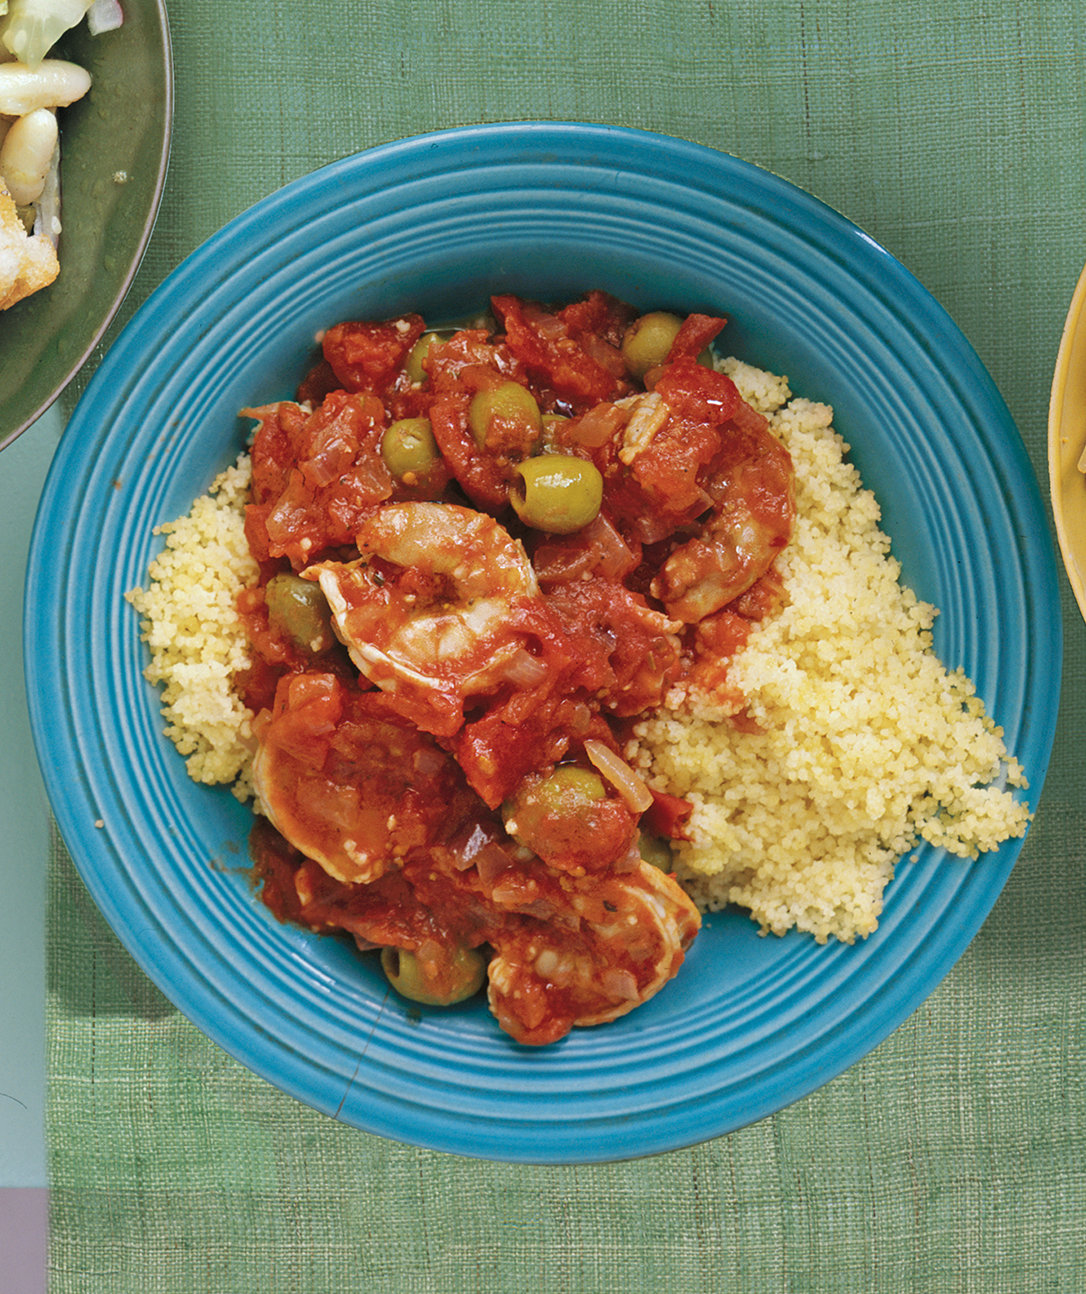 Easy And Fast Dinner Ideas: Shrimp With Tomatoes And Olives